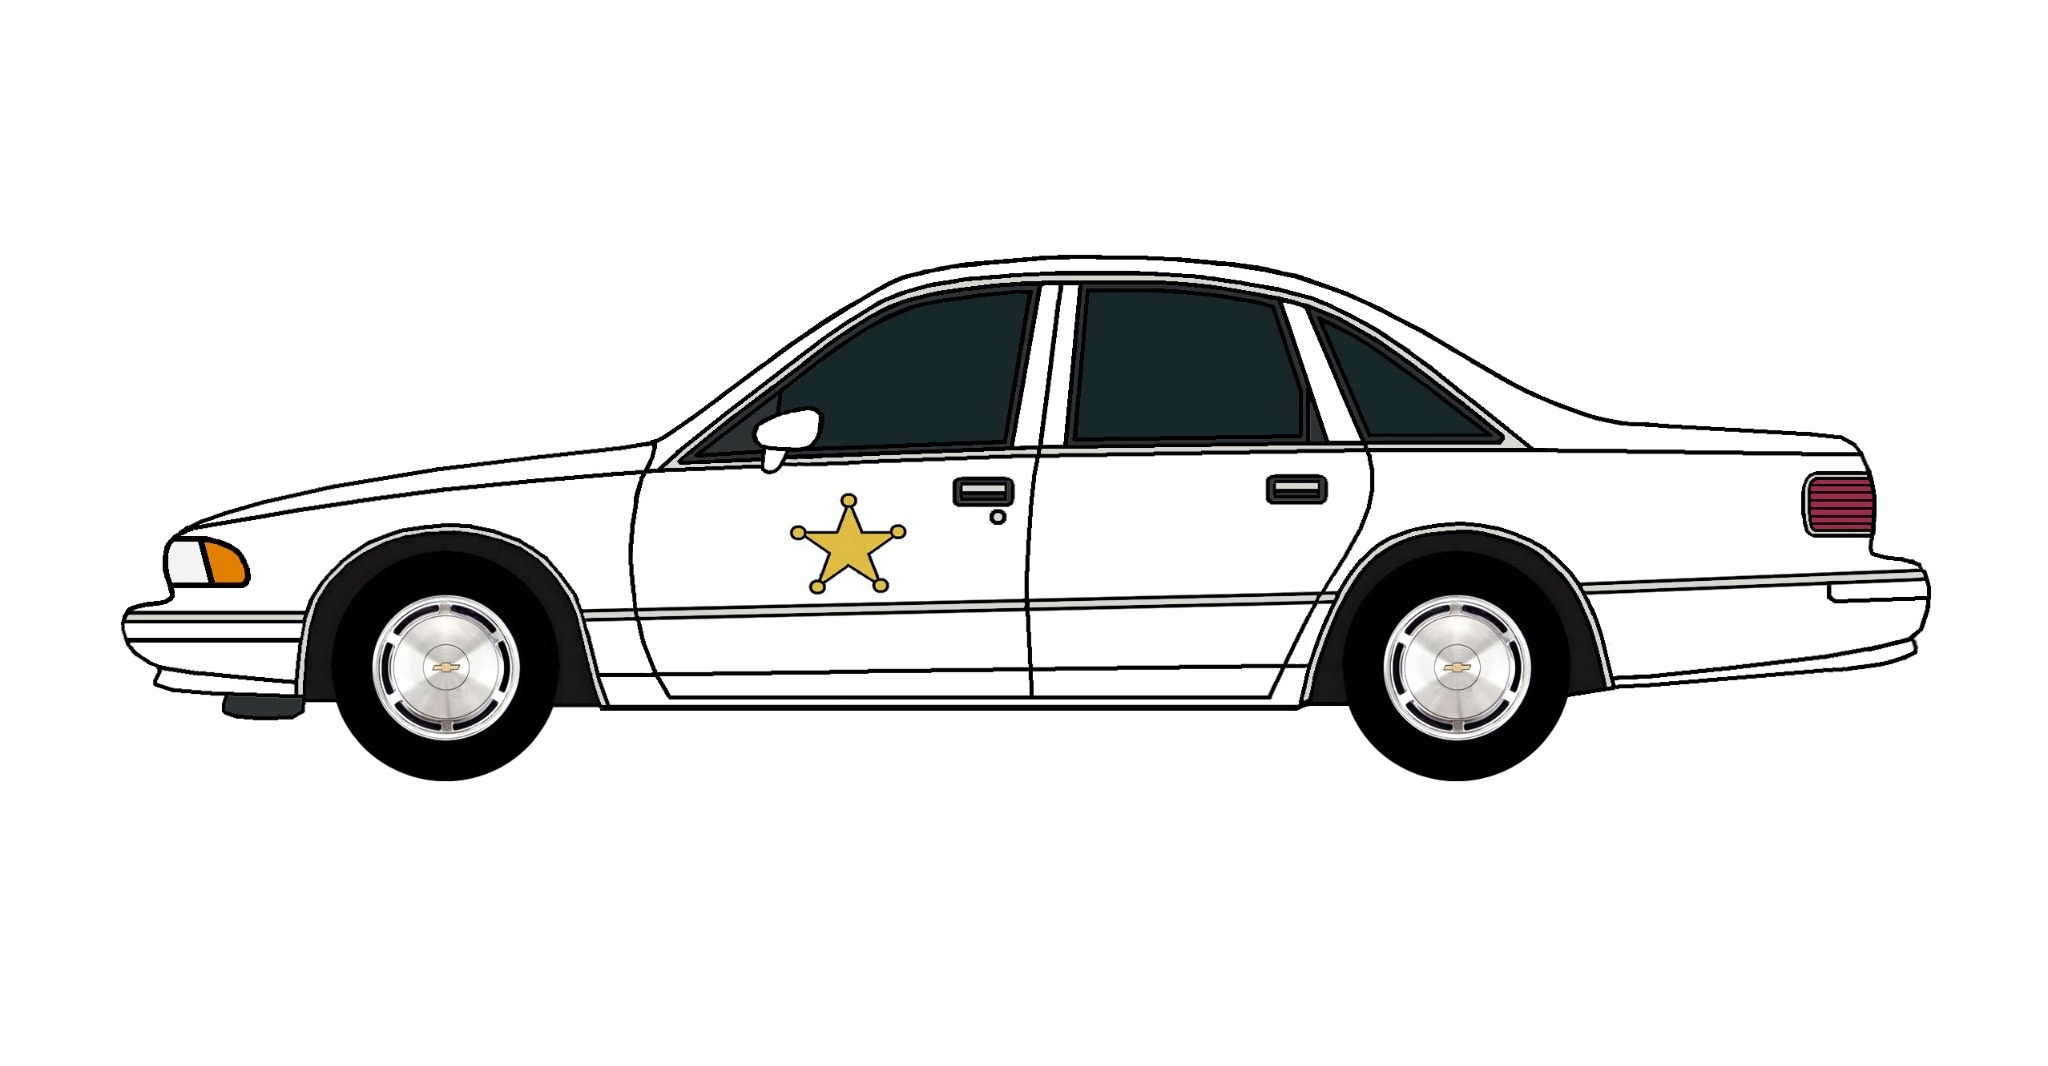 1994 Chevy Caprice Police Car WHITE